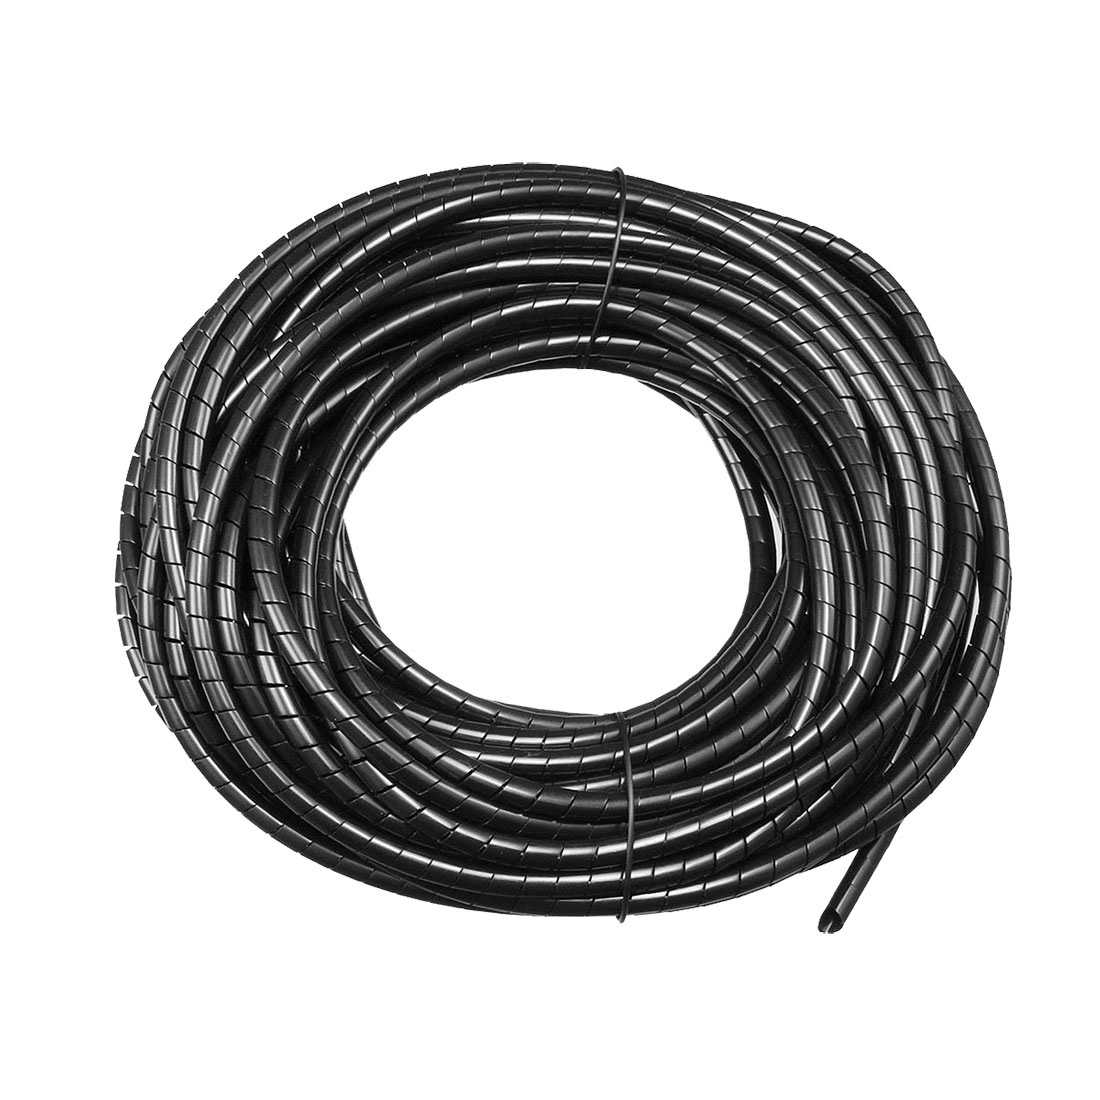 2.8mm Flexible Spiral Tube Cable Wire Wrap Manage Cord 22M Length Black